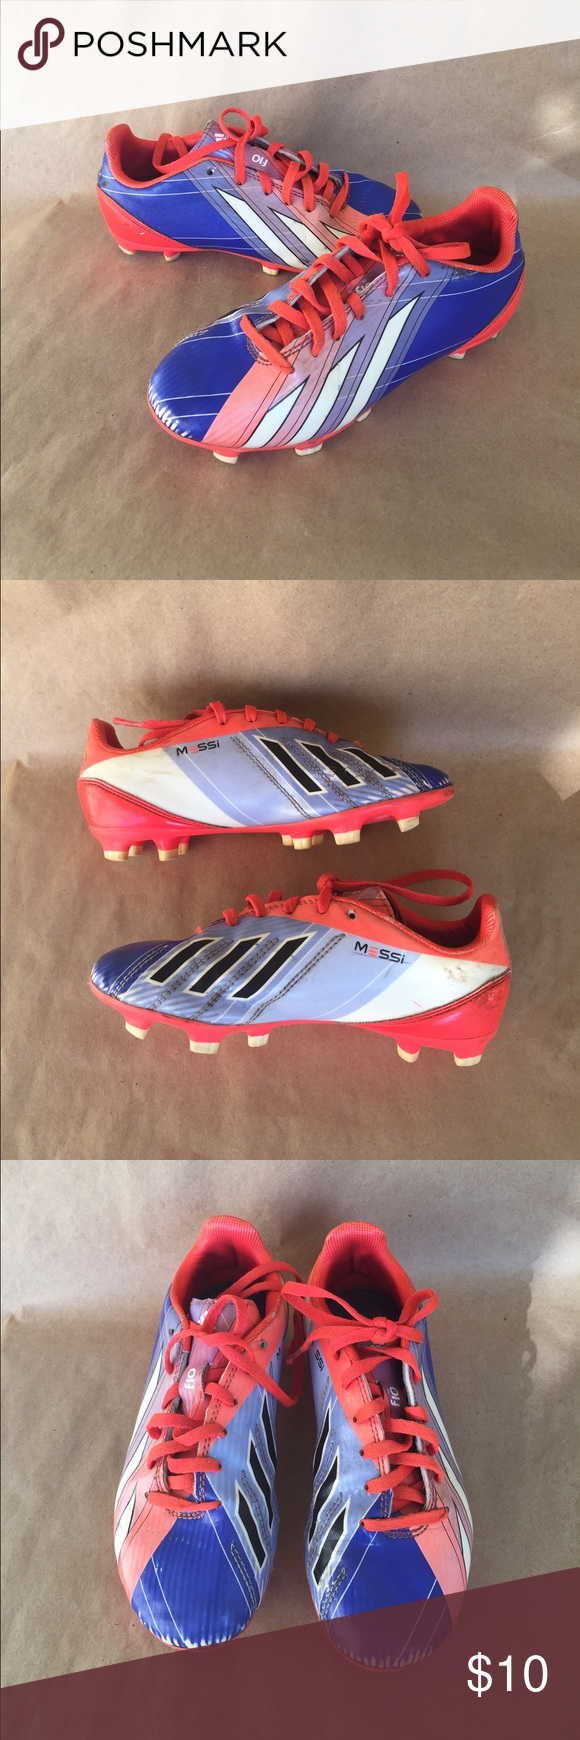 big sale 4eefc 6828f ... special sales Adidas Messi Soccer Cleats Used condition as seen in  photos.